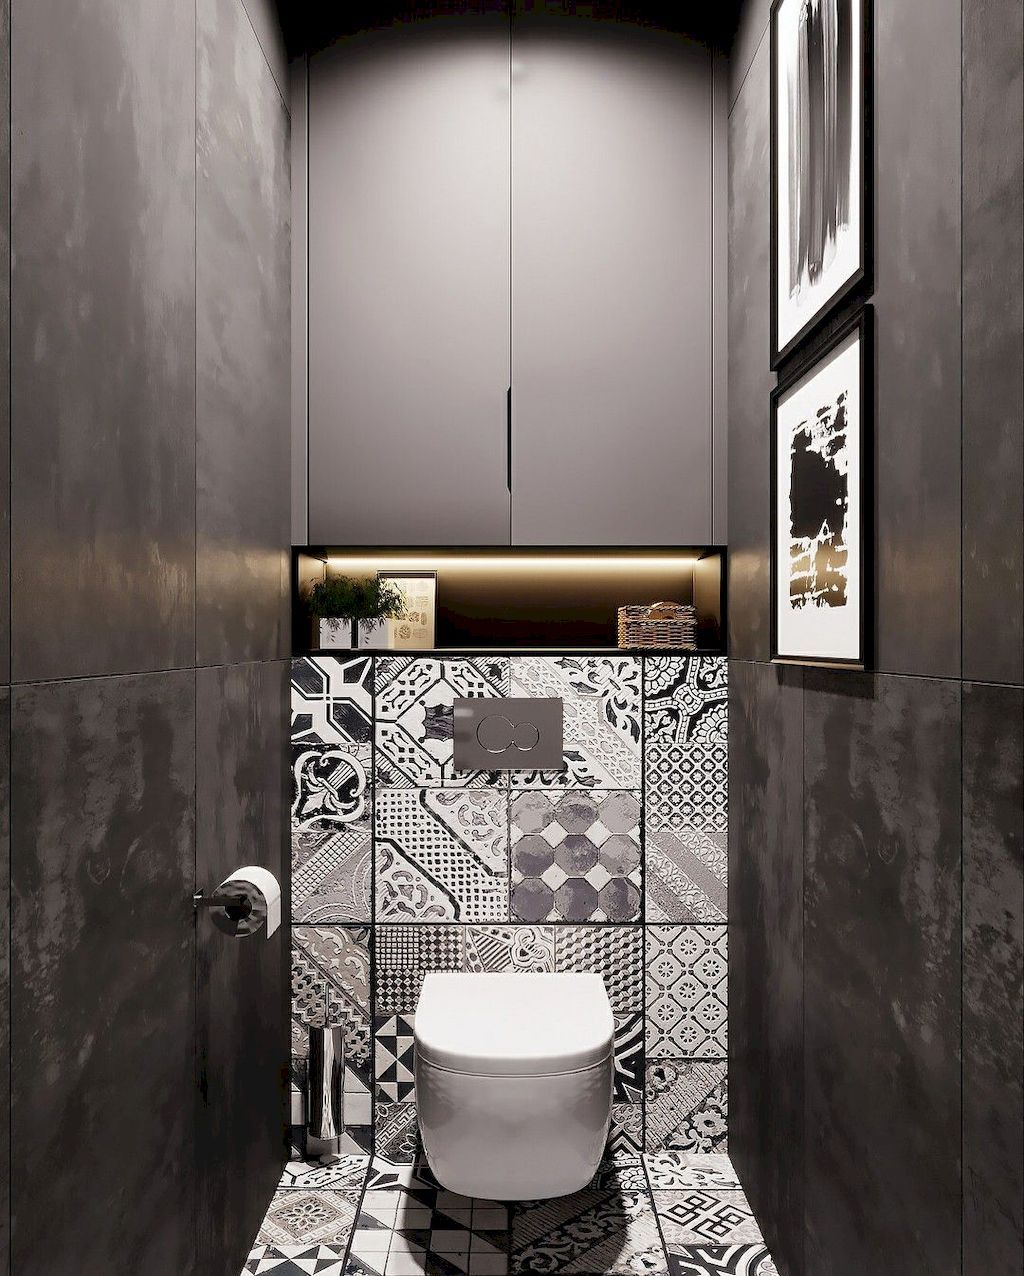 Space Saving Toilet Design For Small Bathroom Home To Z Bathroom Design Small Small Toilet Design Small Space Bathroom